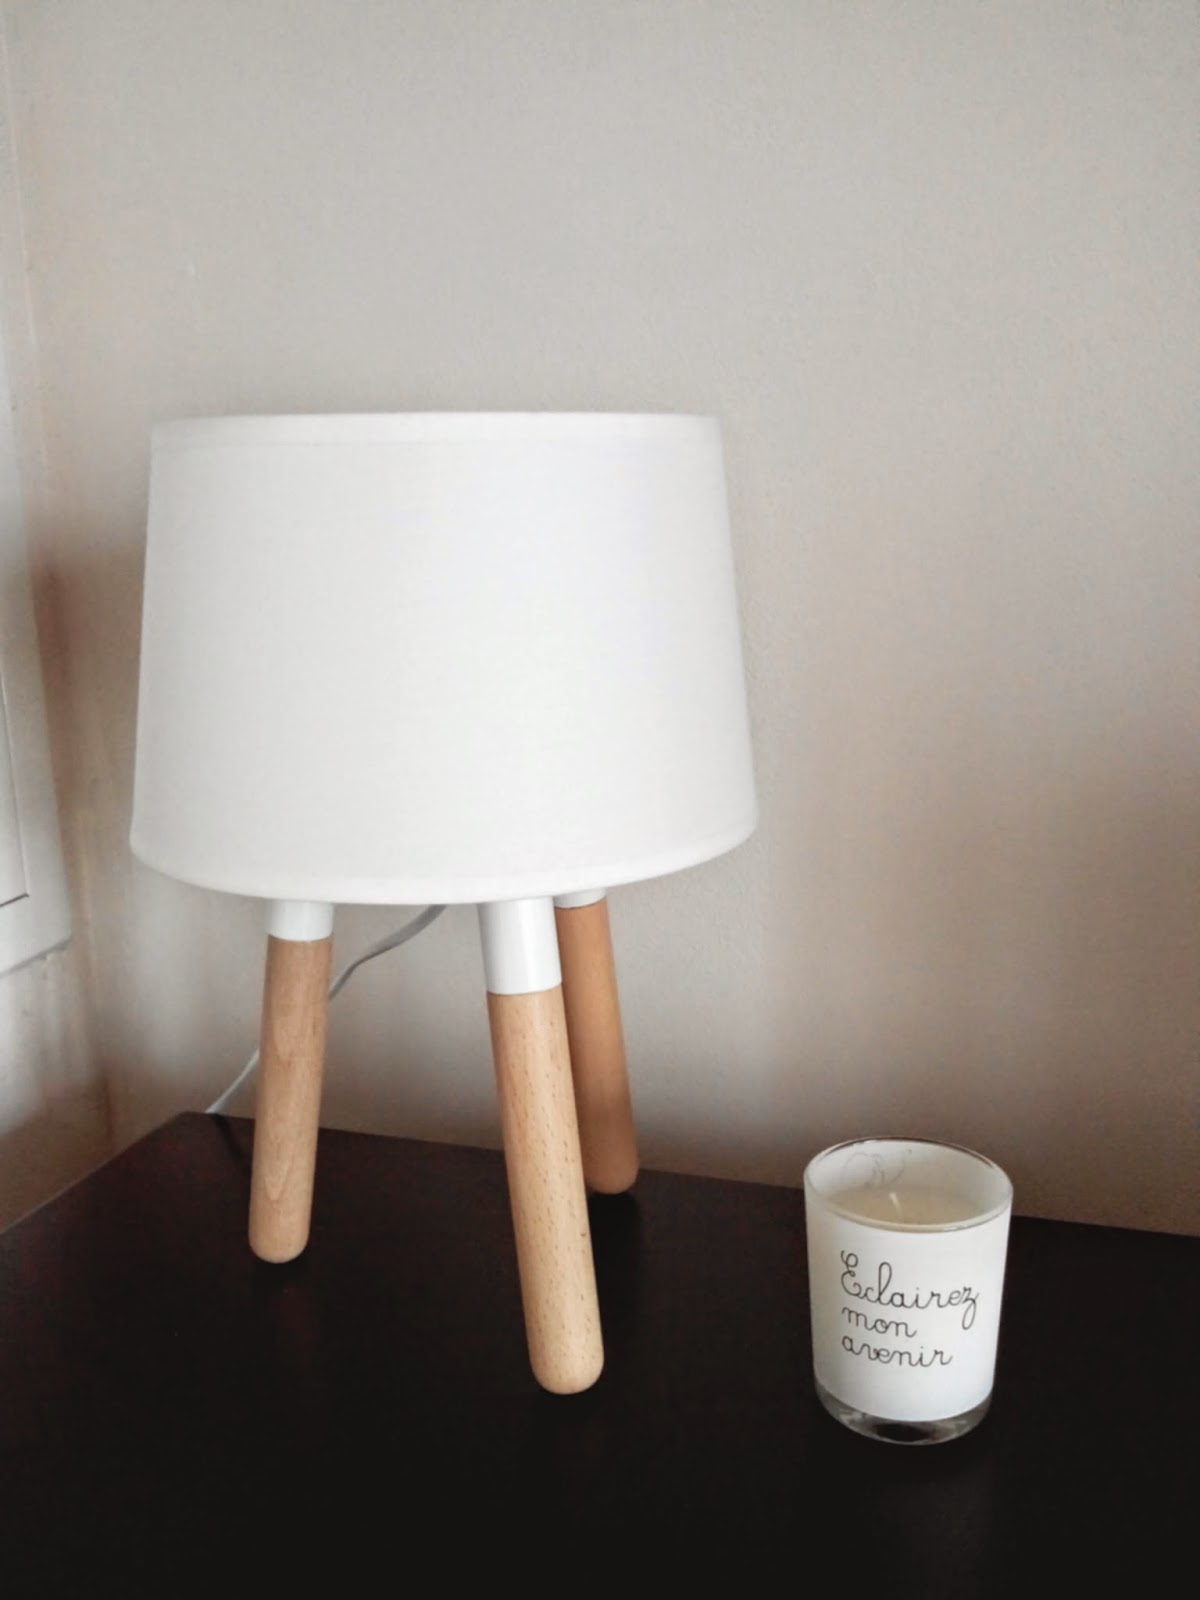 lampe, scandinave, bougie, westwing, déco, décoration, luminaire, bullelodie